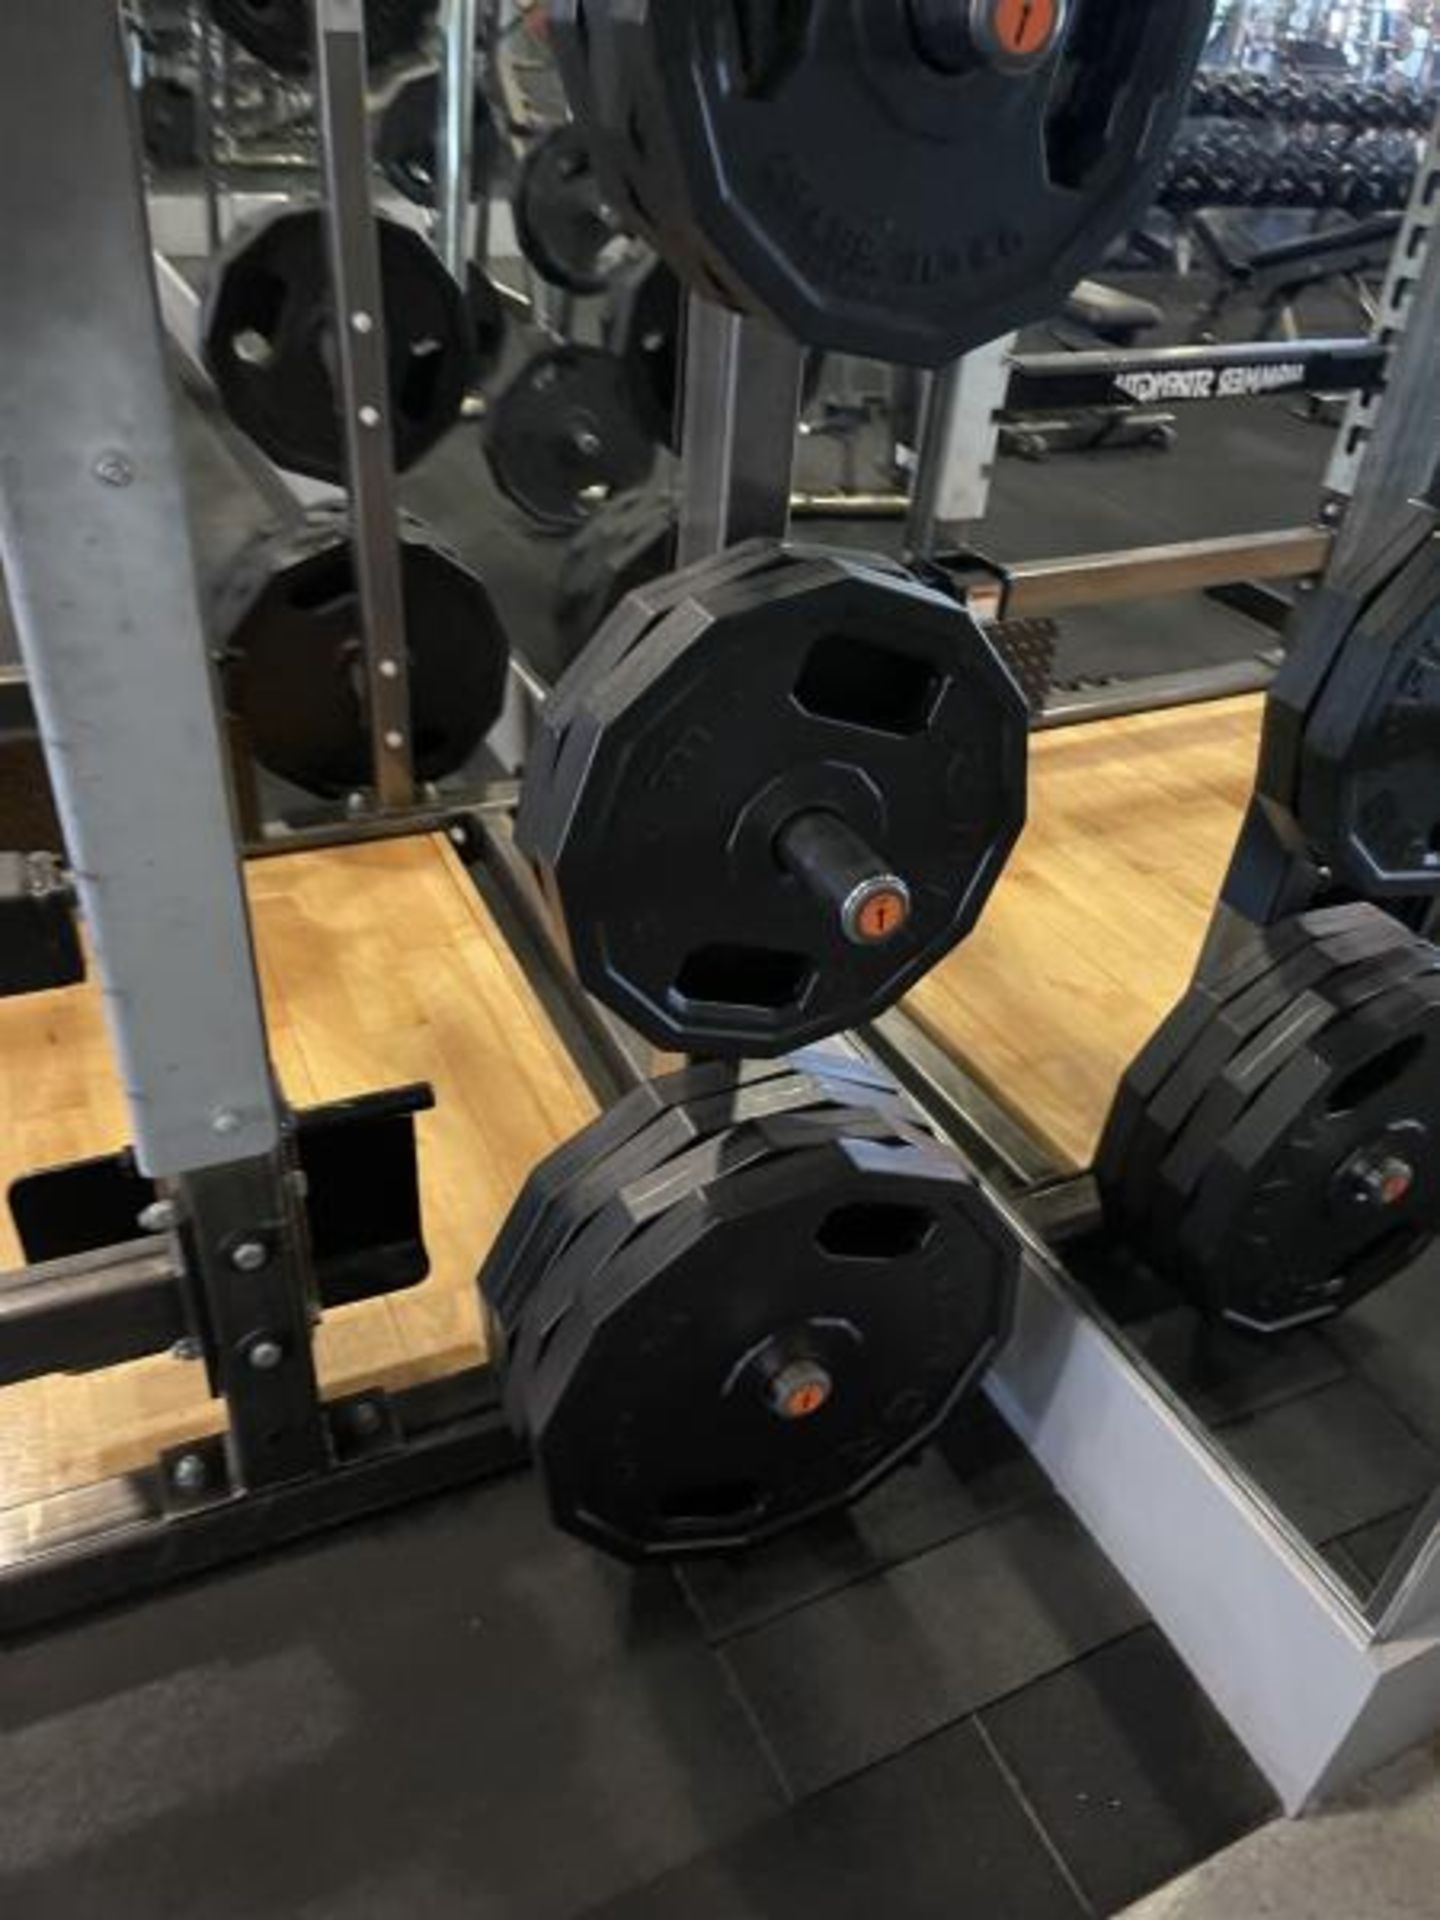 Hammer Strength with Wood Floor, Rack, Iron Grip Weight Plates M: HDMR8/B01 - Image 6 of 7